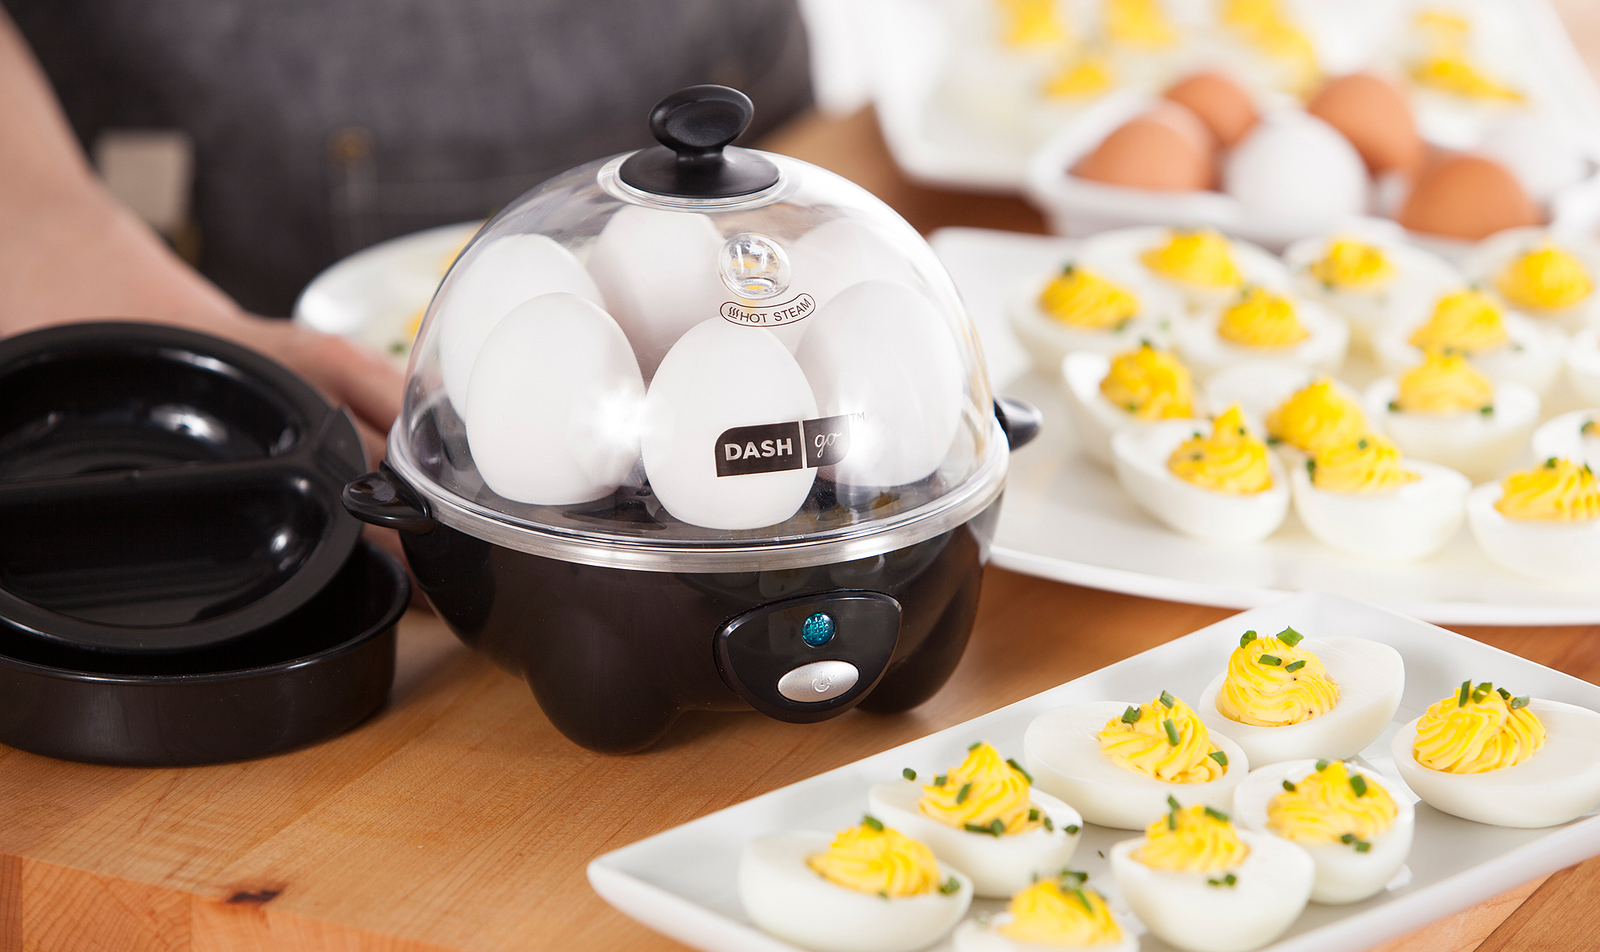 the egg cooker